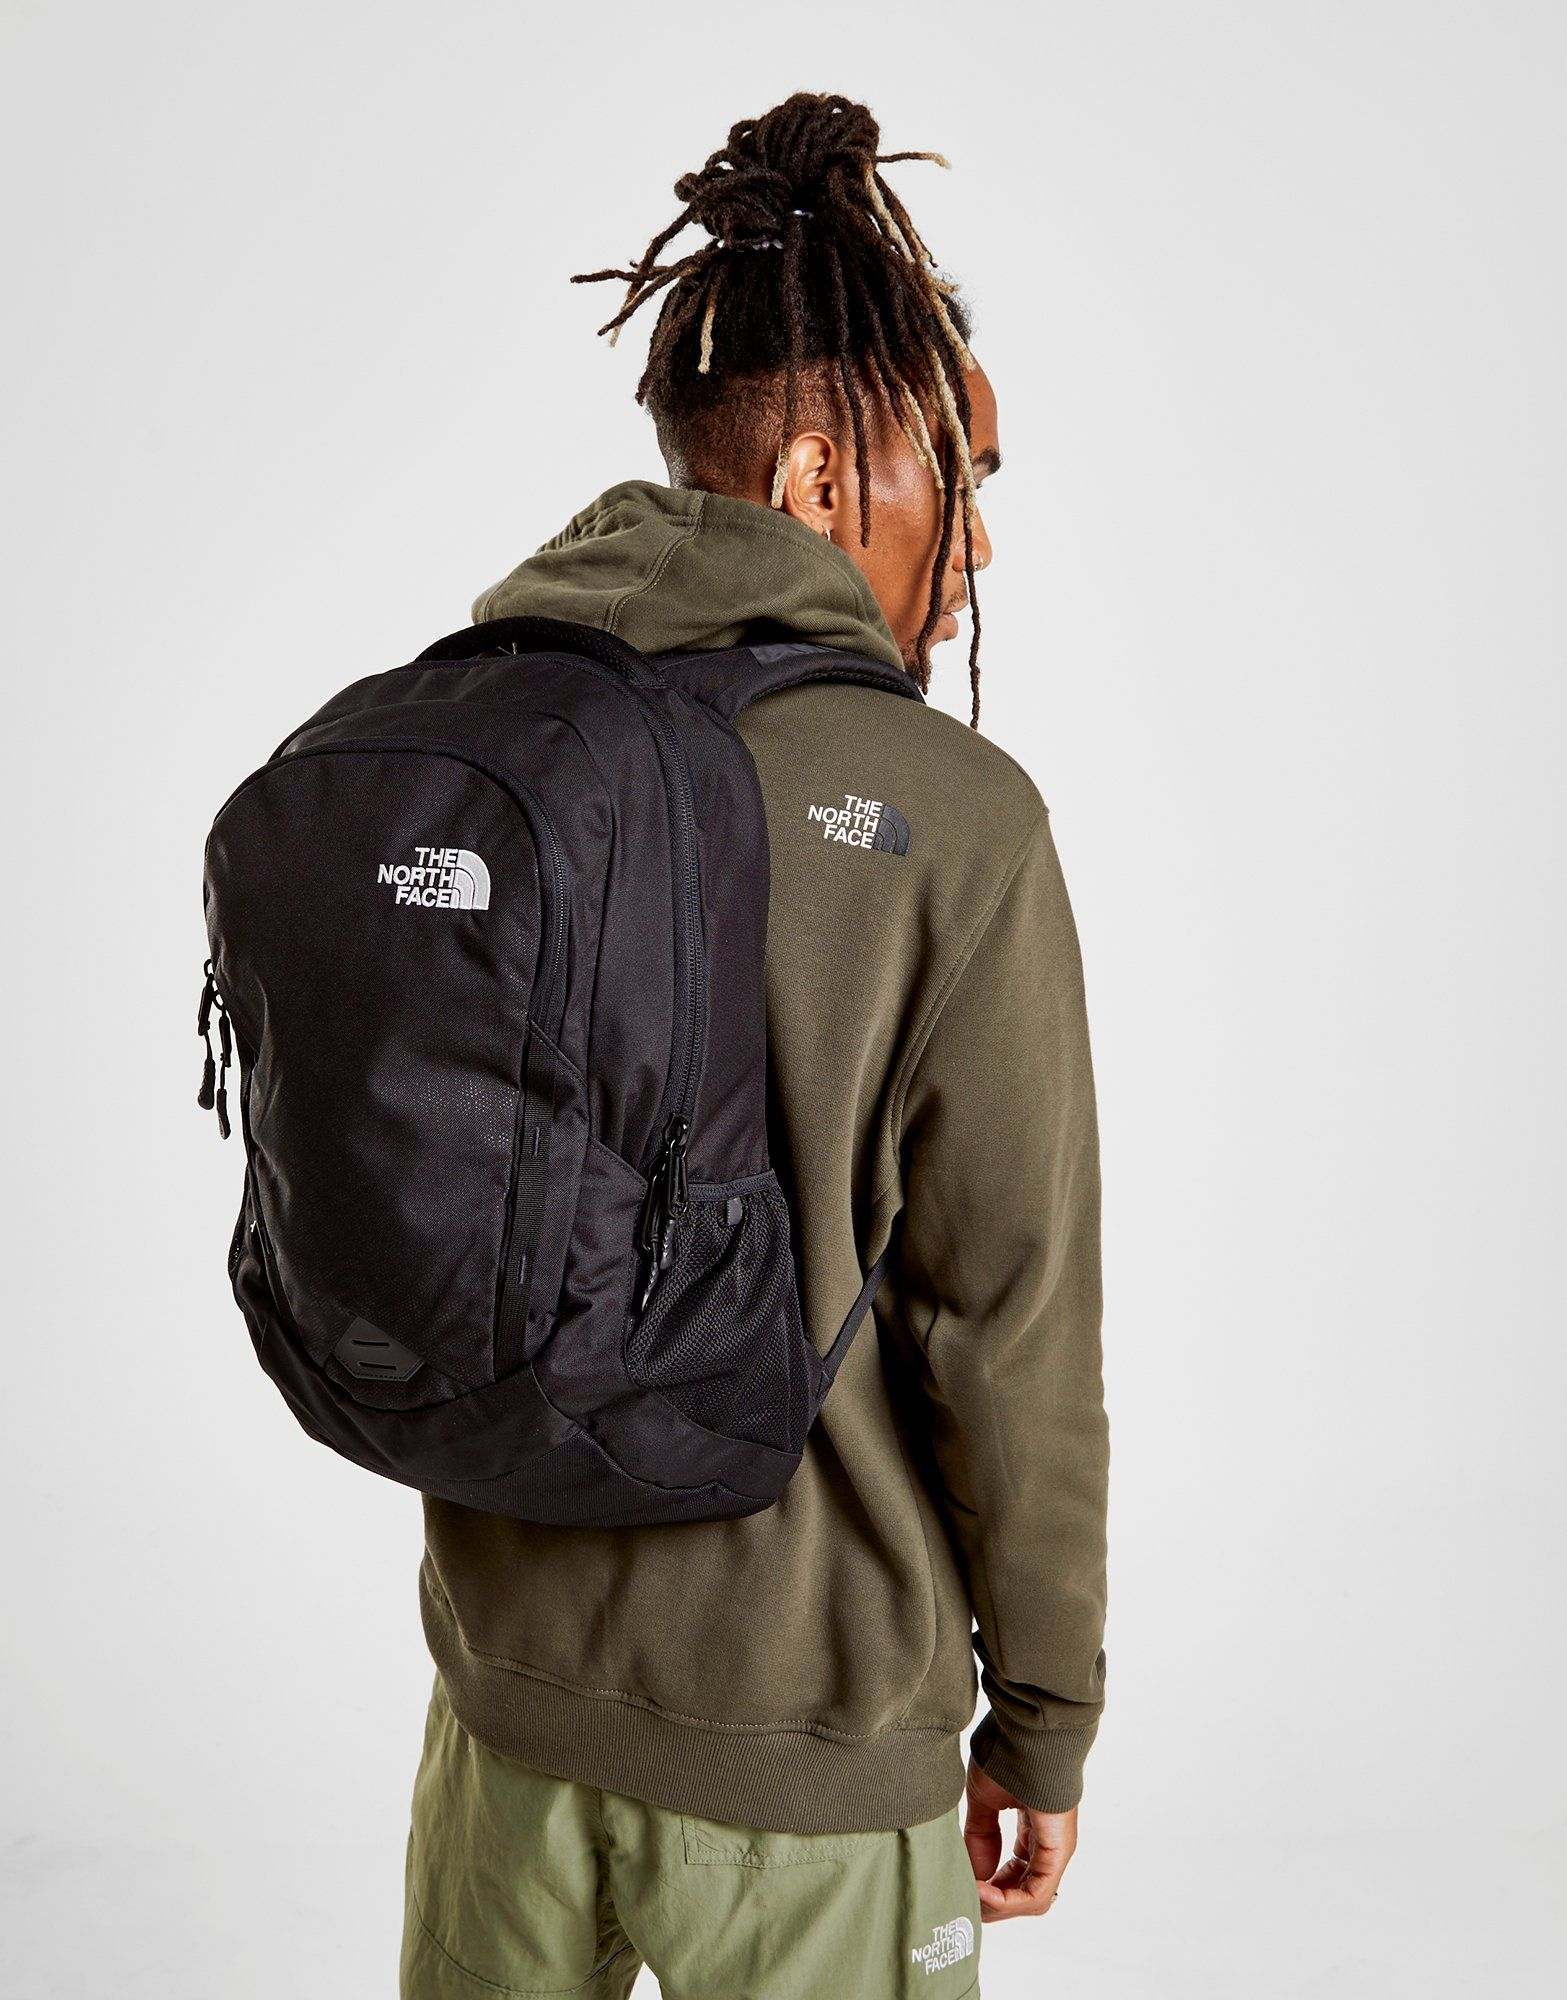 384ac17c7 The North Face Vault Backpack | JD Sports